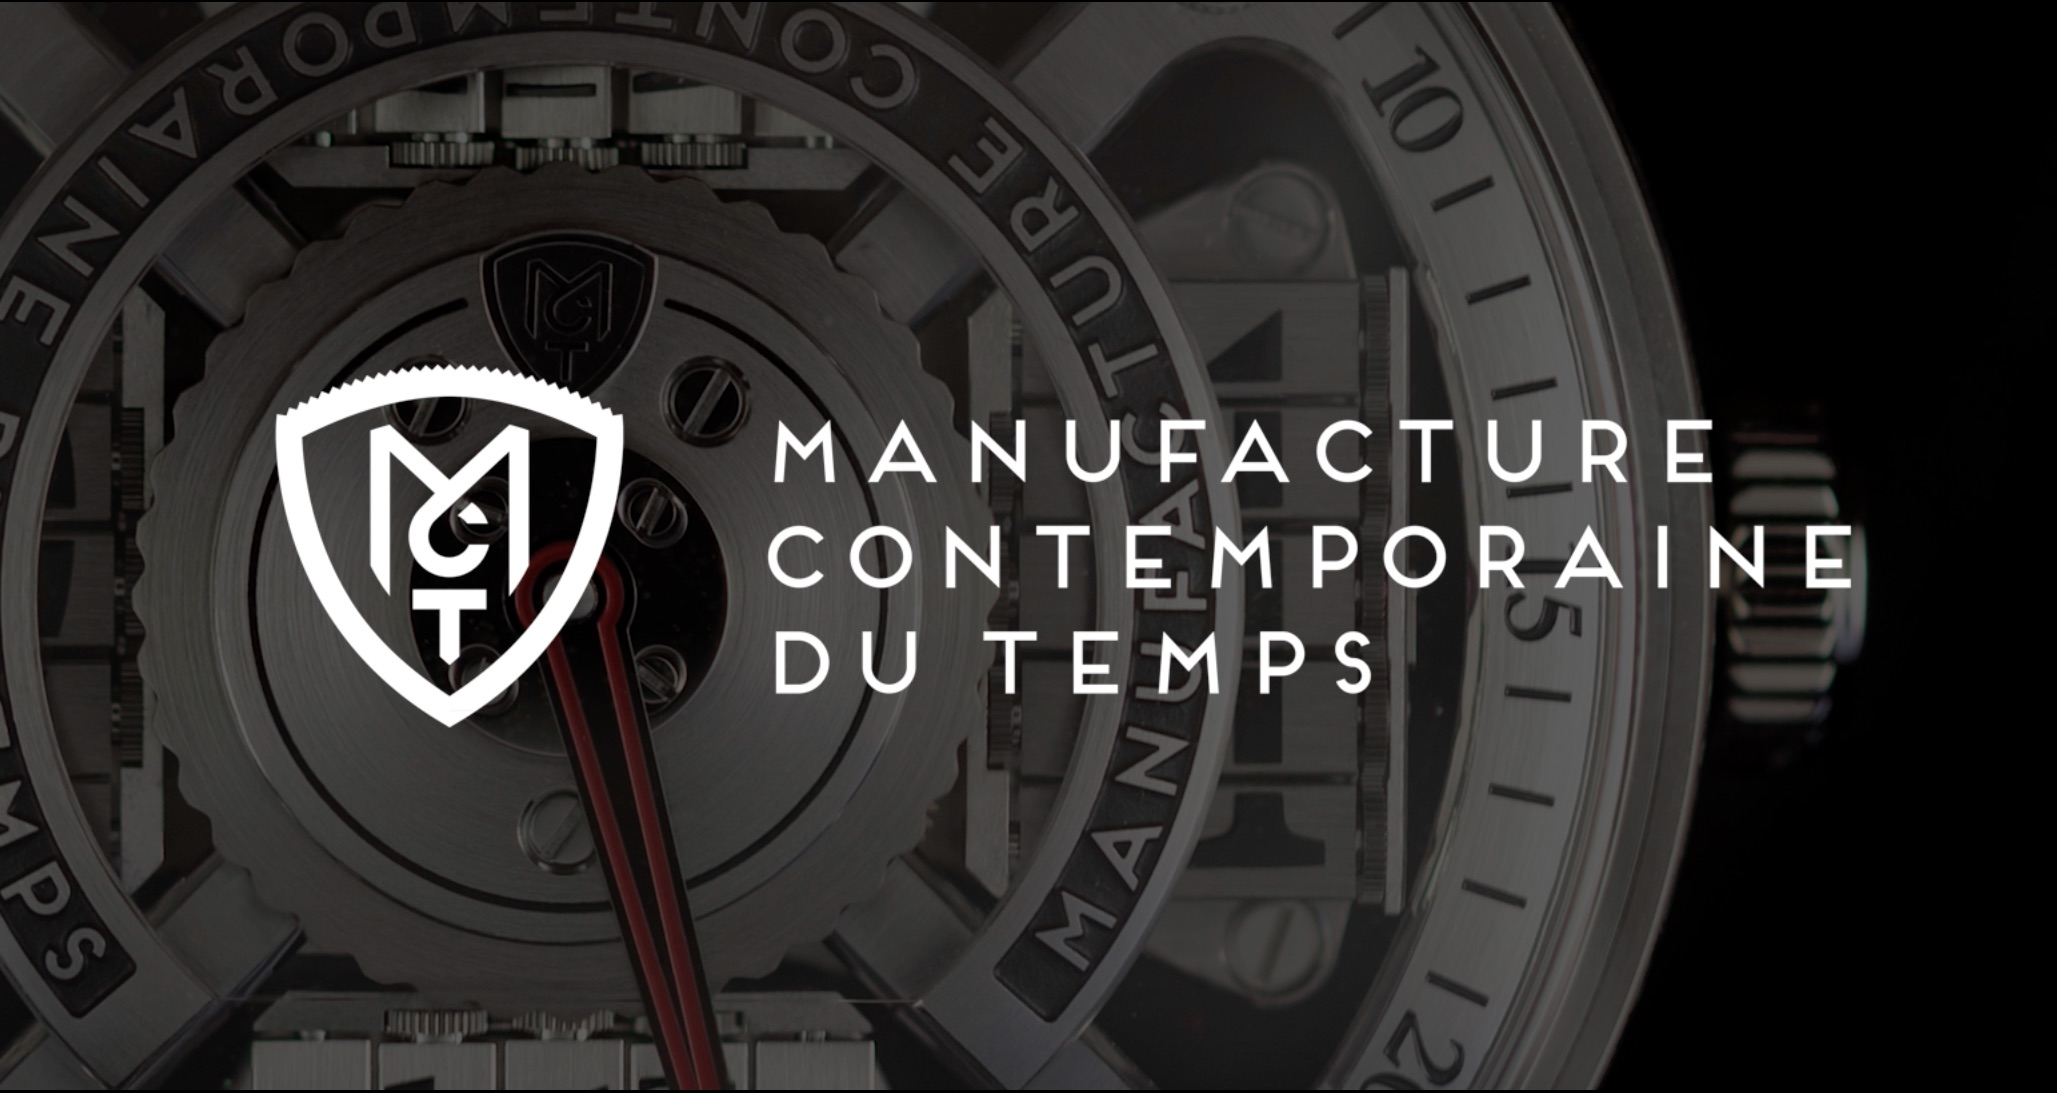 The Monochrome Video Week - MCT Watches - The Present and Future of an Independent Brand